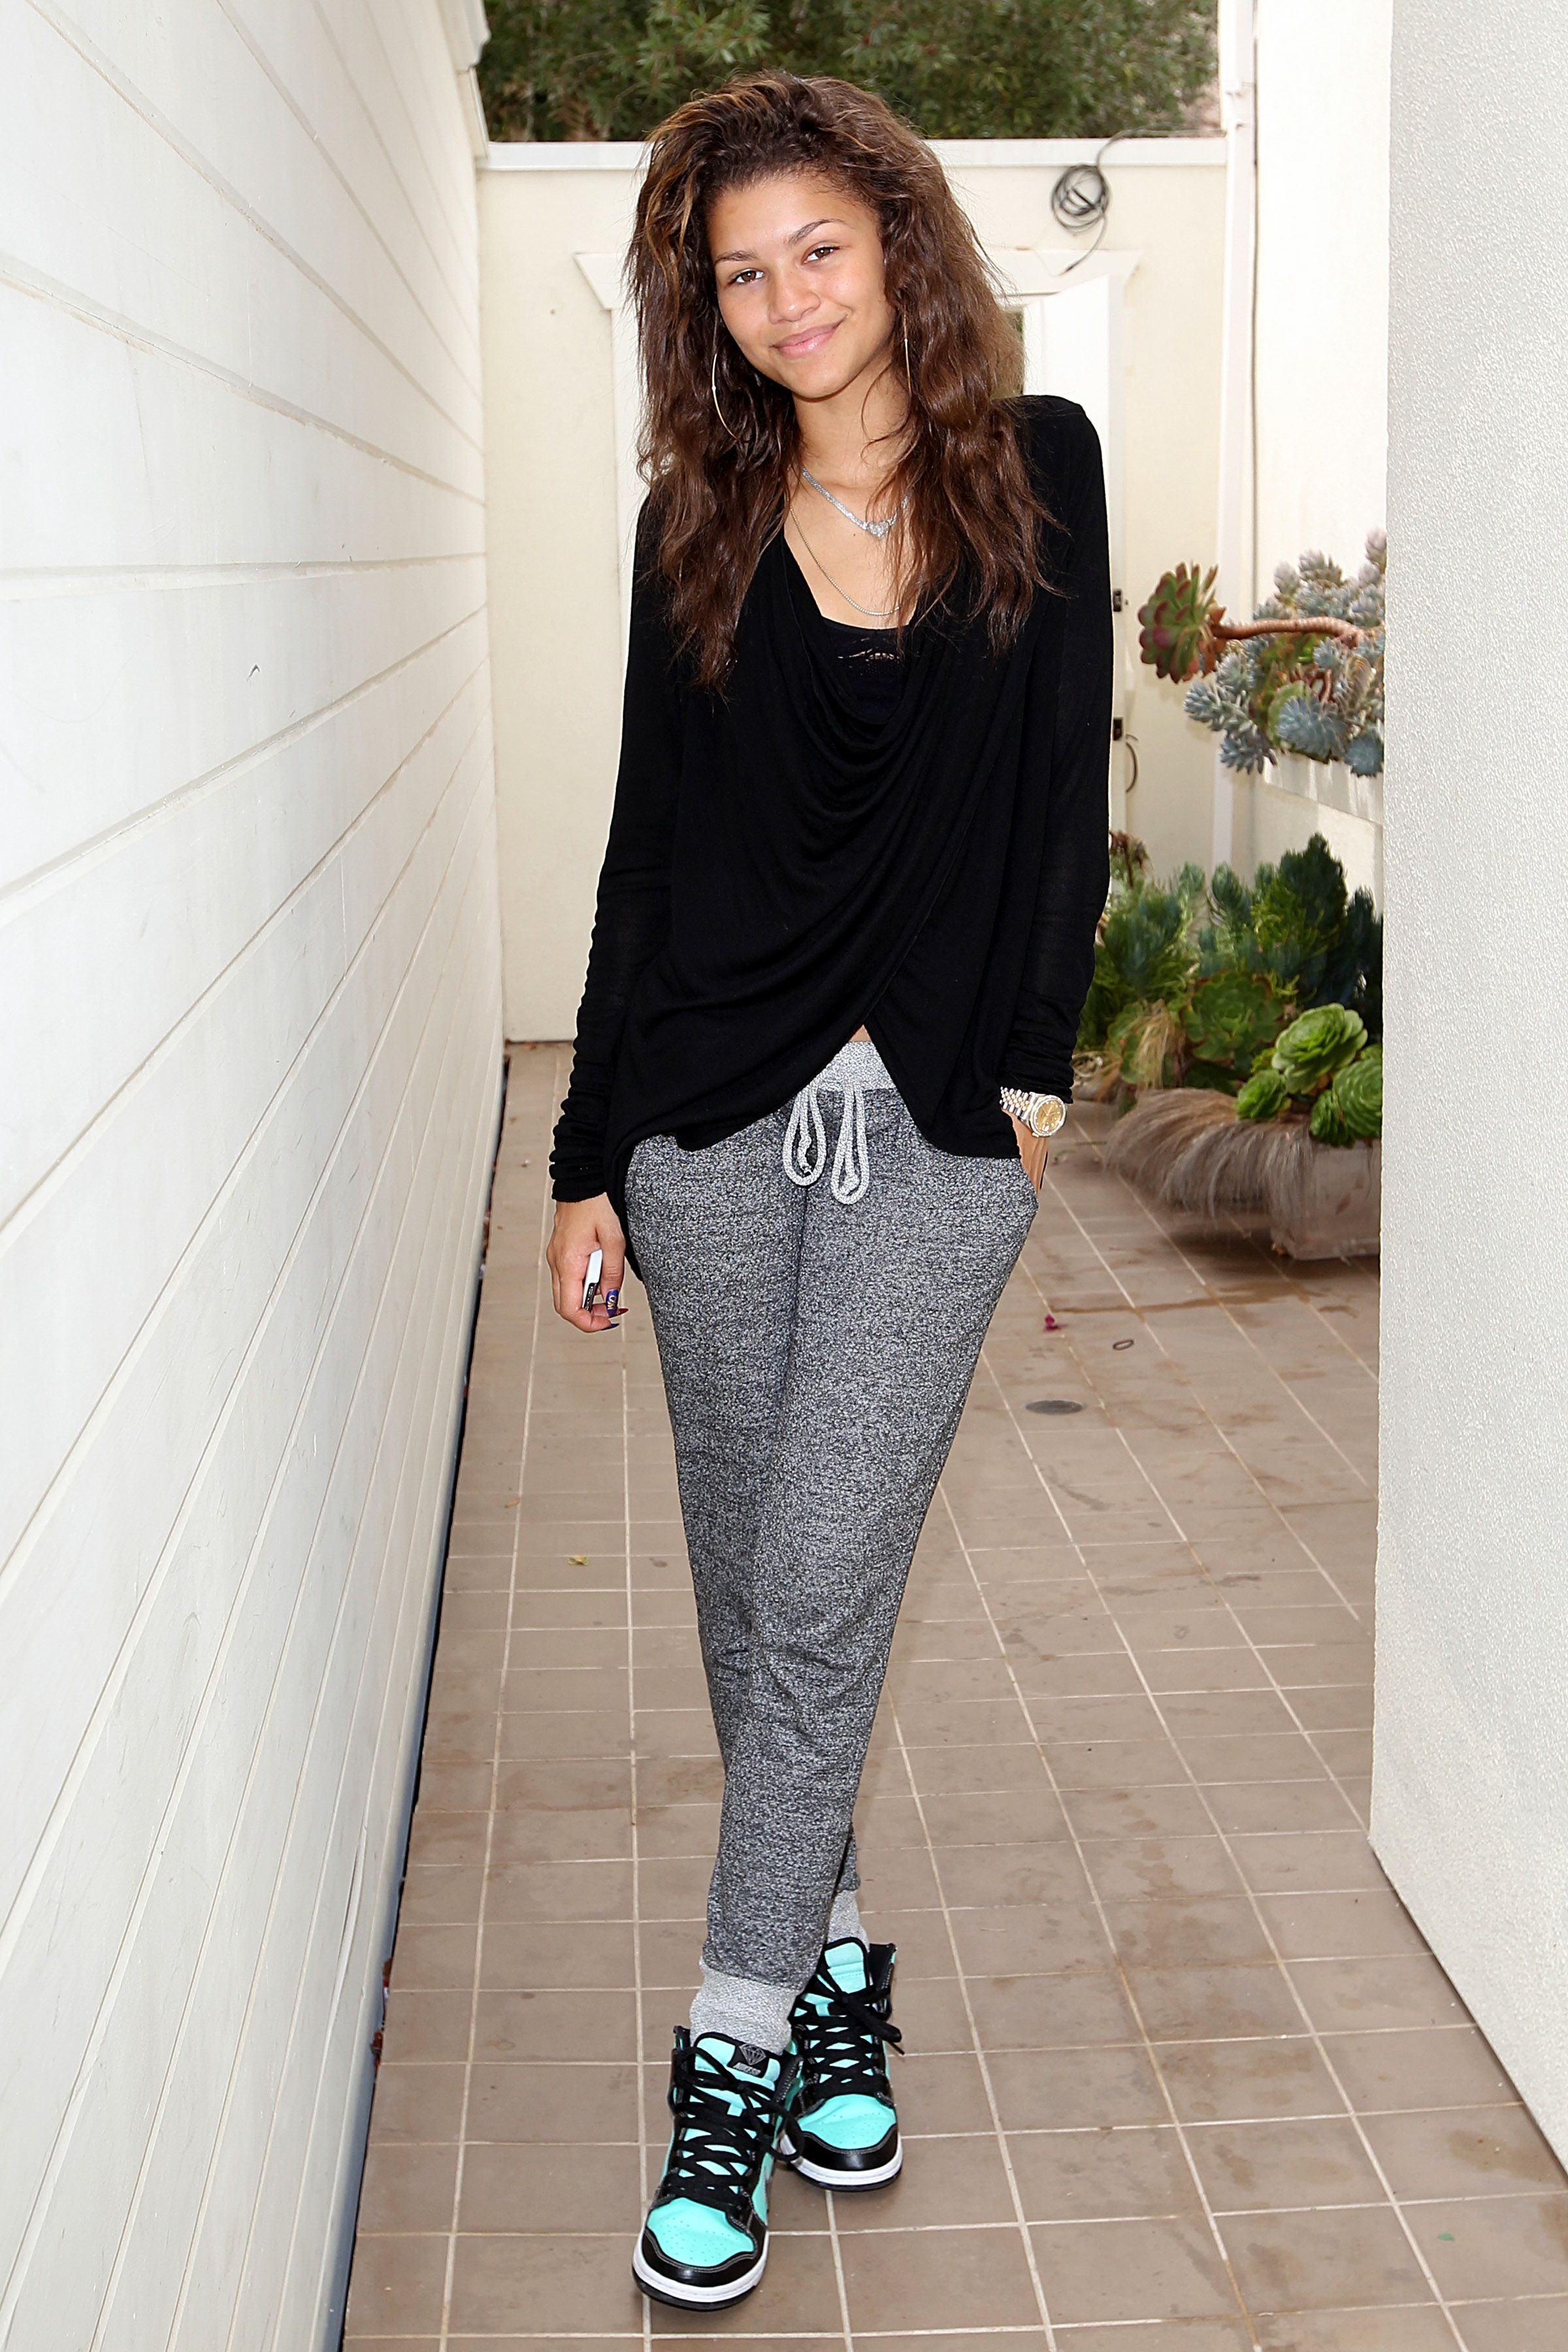 e0de272ce1c4 Zendaya looked so cute rocking a casual yet glam outfit at a birthday party  for Ludacris  daughter. We love how she paired comfy sweats and colorful  kicks ...